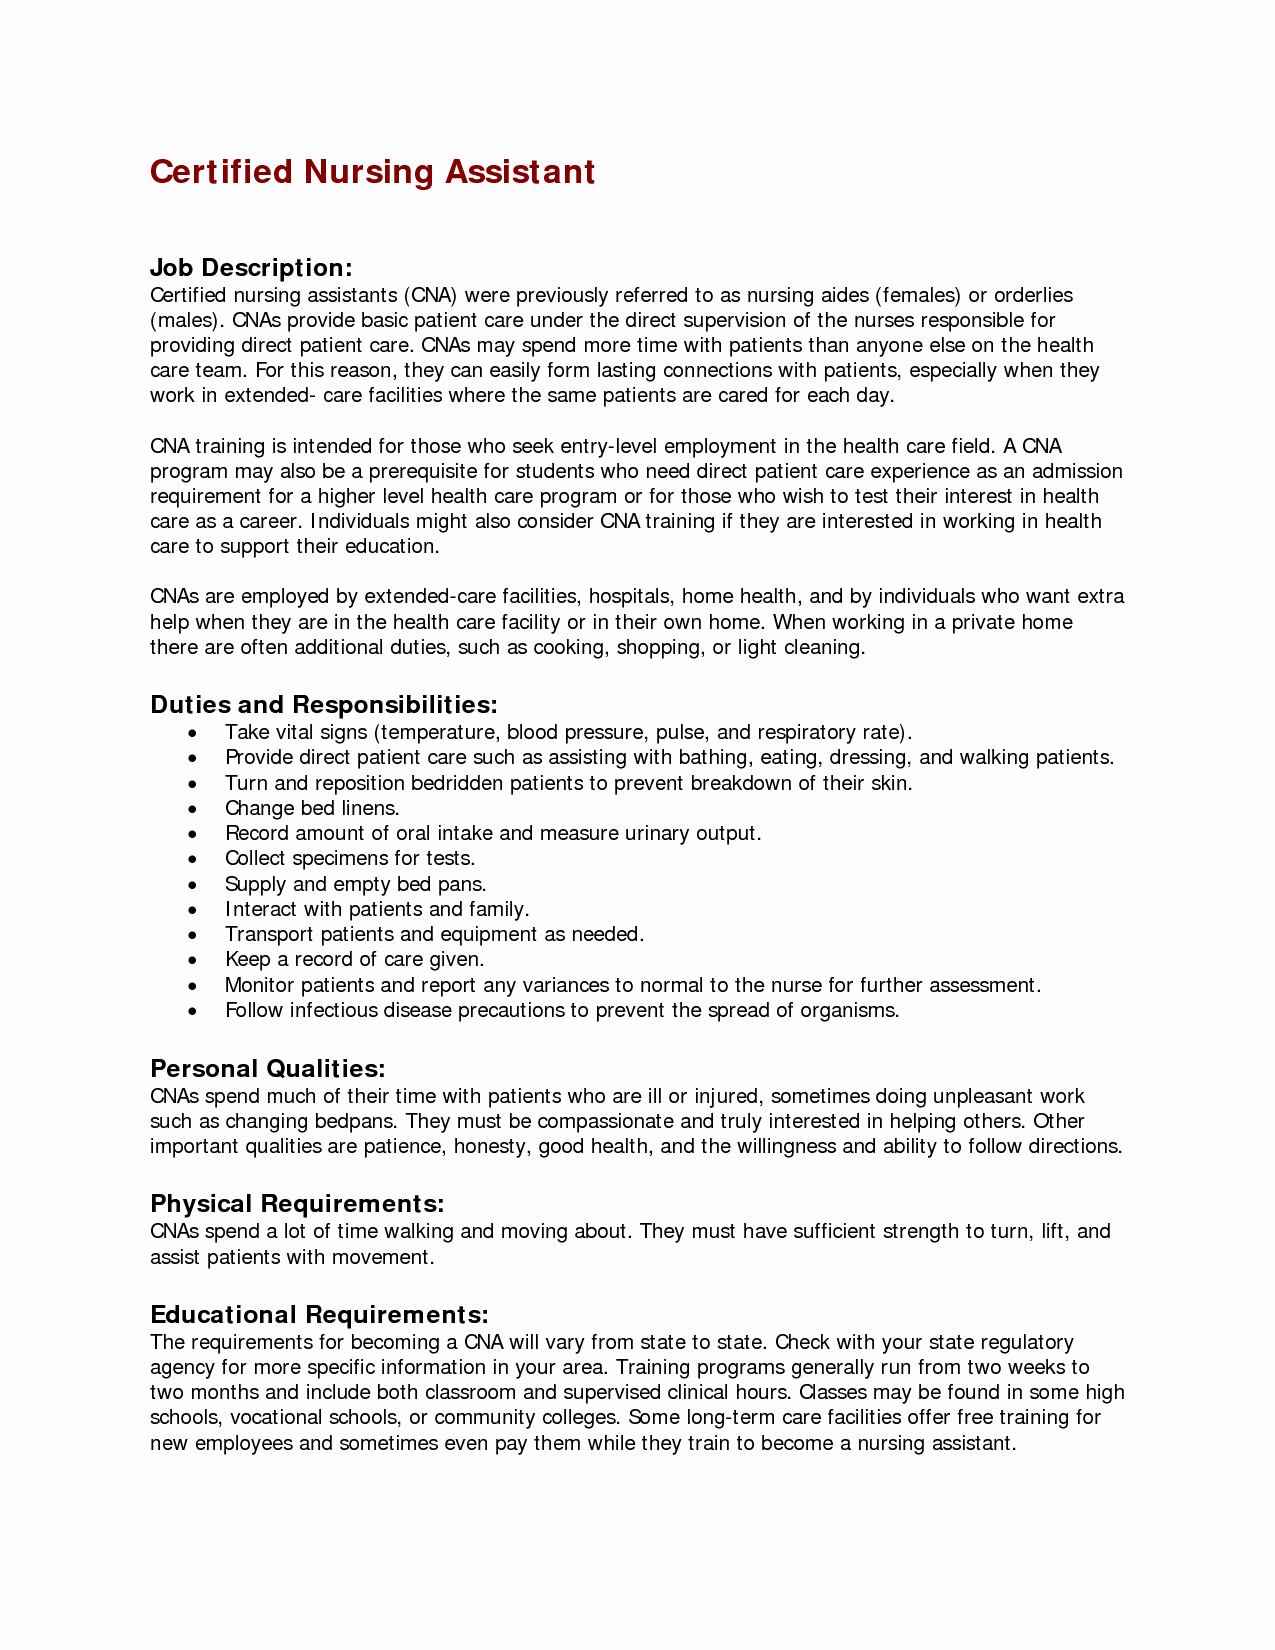 Resumes for Cna Position New Nursing assistant Job Description for Resume Resume Ideas